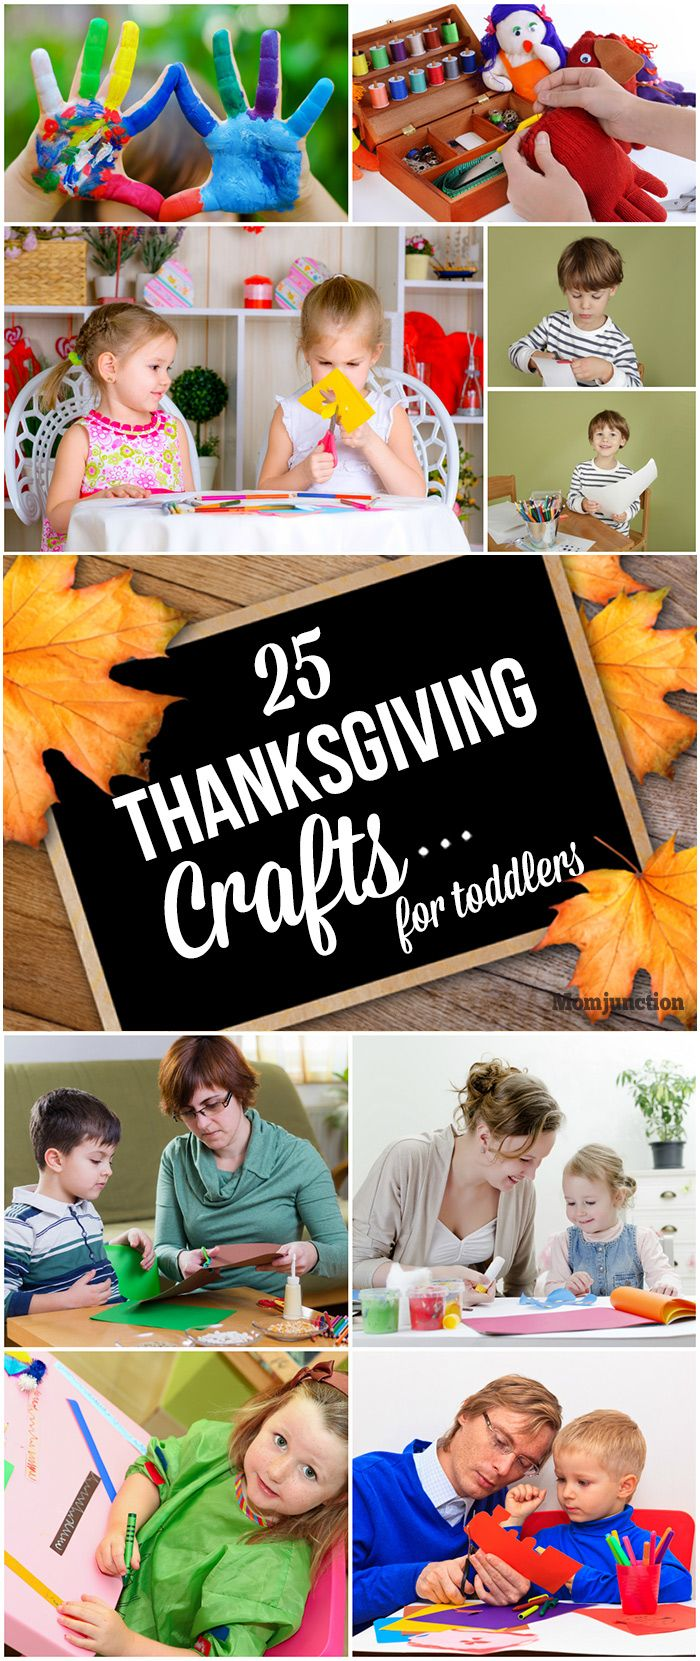 25 Thanksgiving Crafts For Toddlers/Preschoolers: Here is an assortment of Thanksgiving craft ideas and DIY that will make the holiday fun and memorable for the kids.